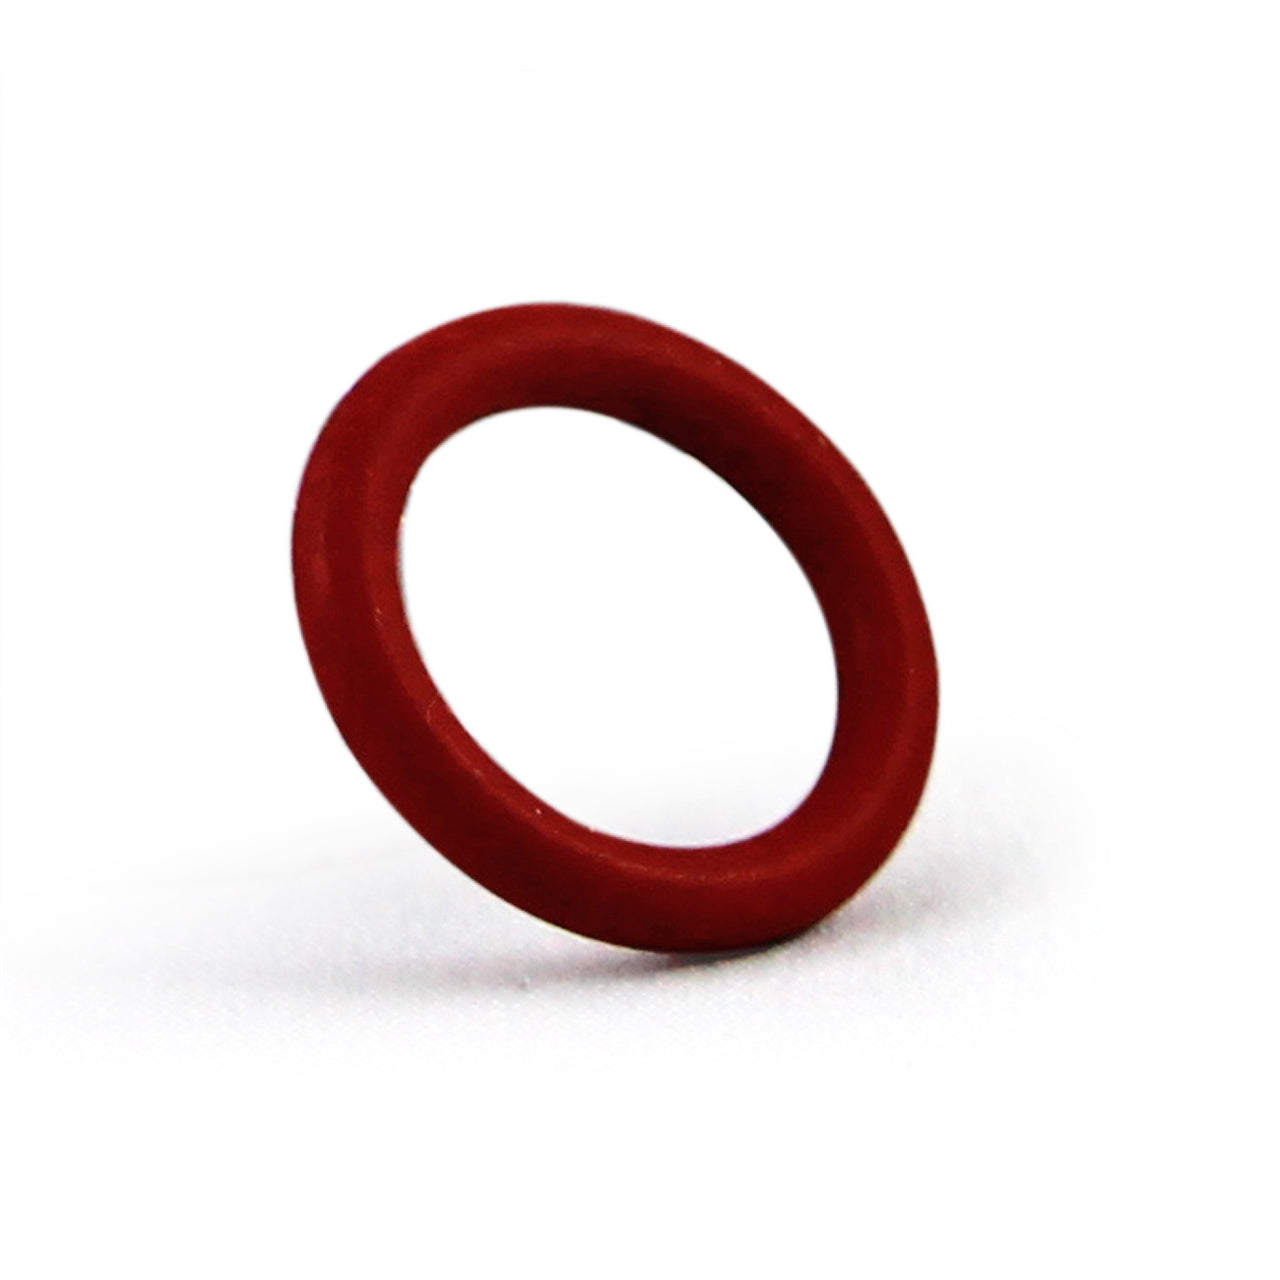 Replacement O-Ring For Nylon Syringe 100Ml - Drug Administration Cattle Boss - Canada